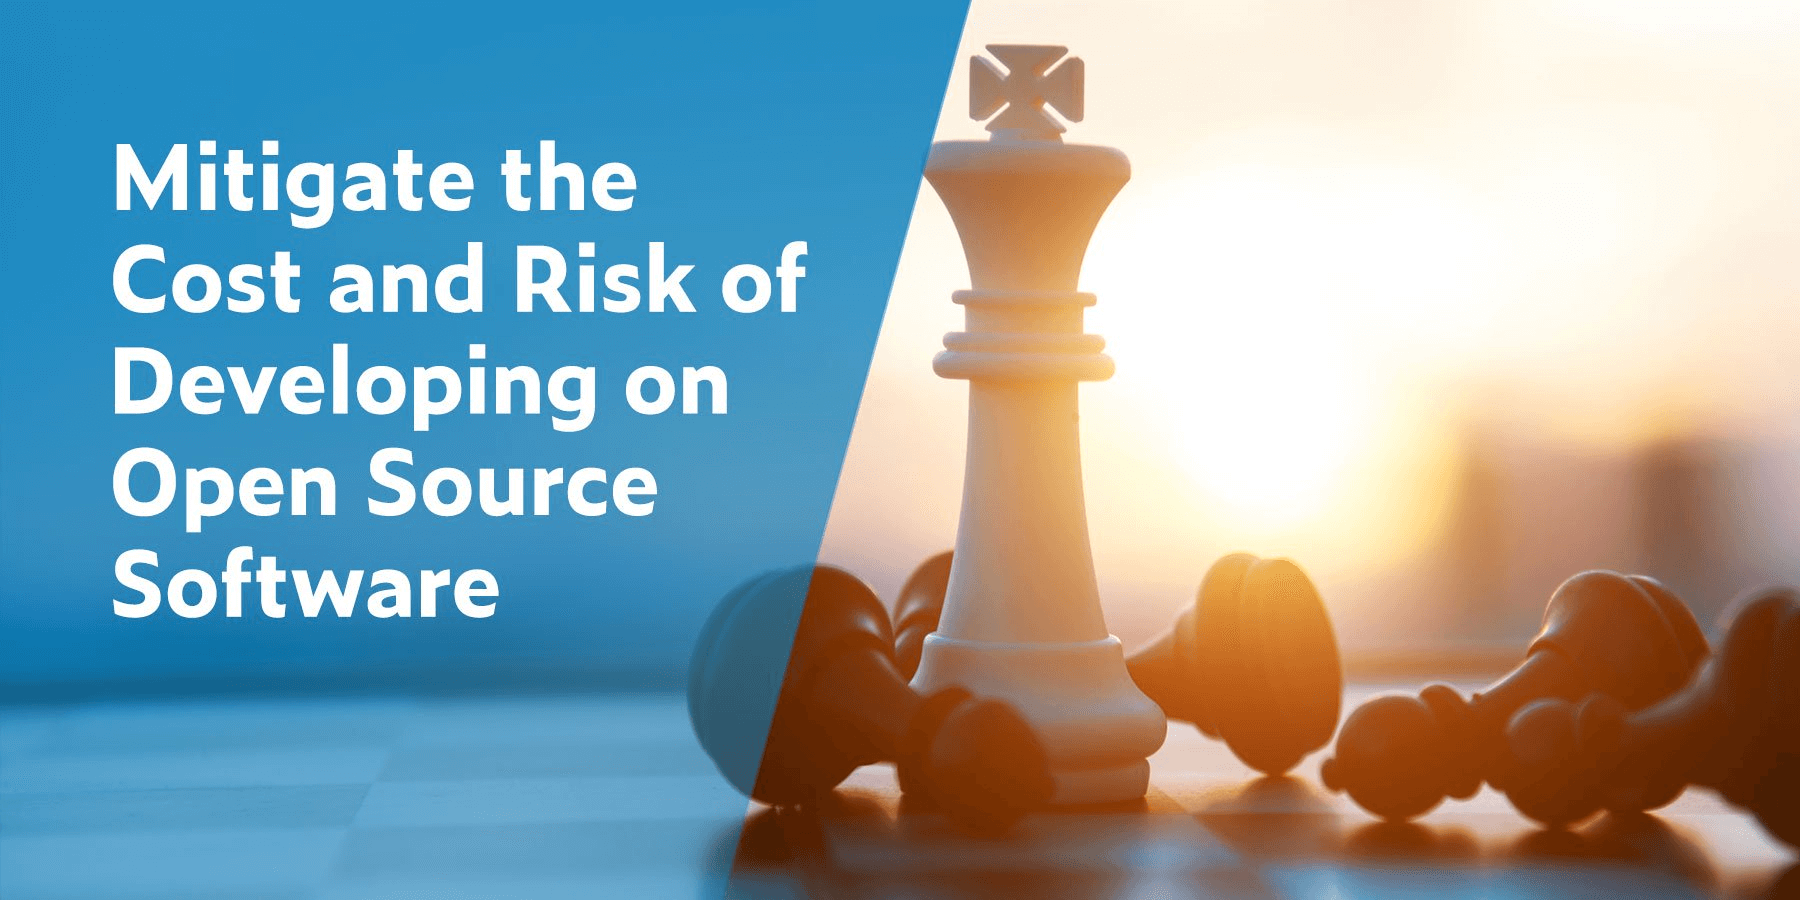 Mitigate the Cost and Risk of Developing on Open Source Software